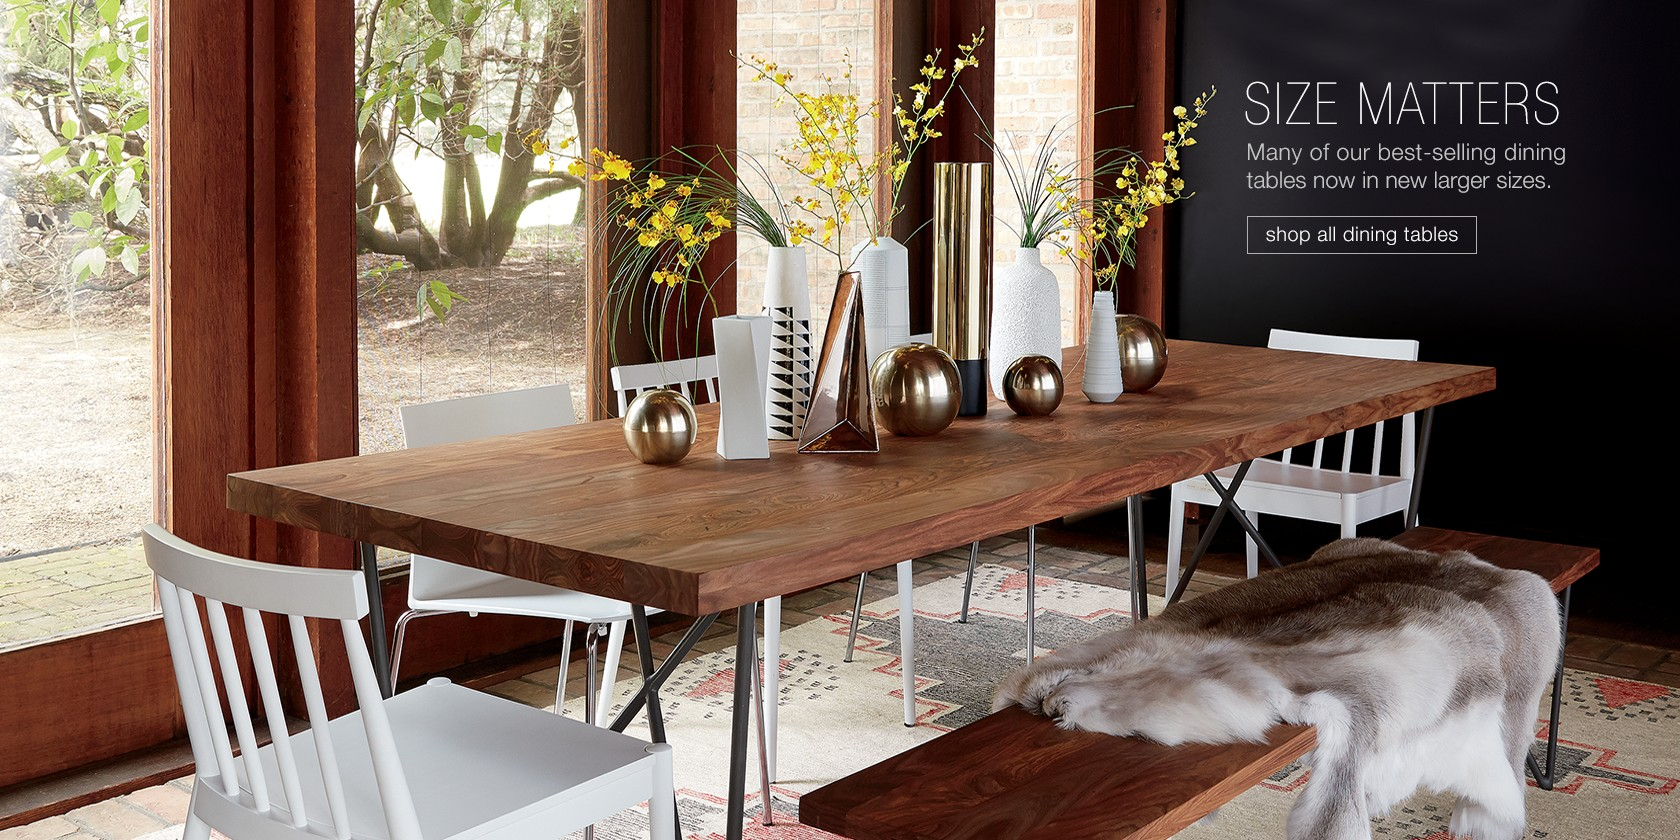 size matters. shop all dining tables.